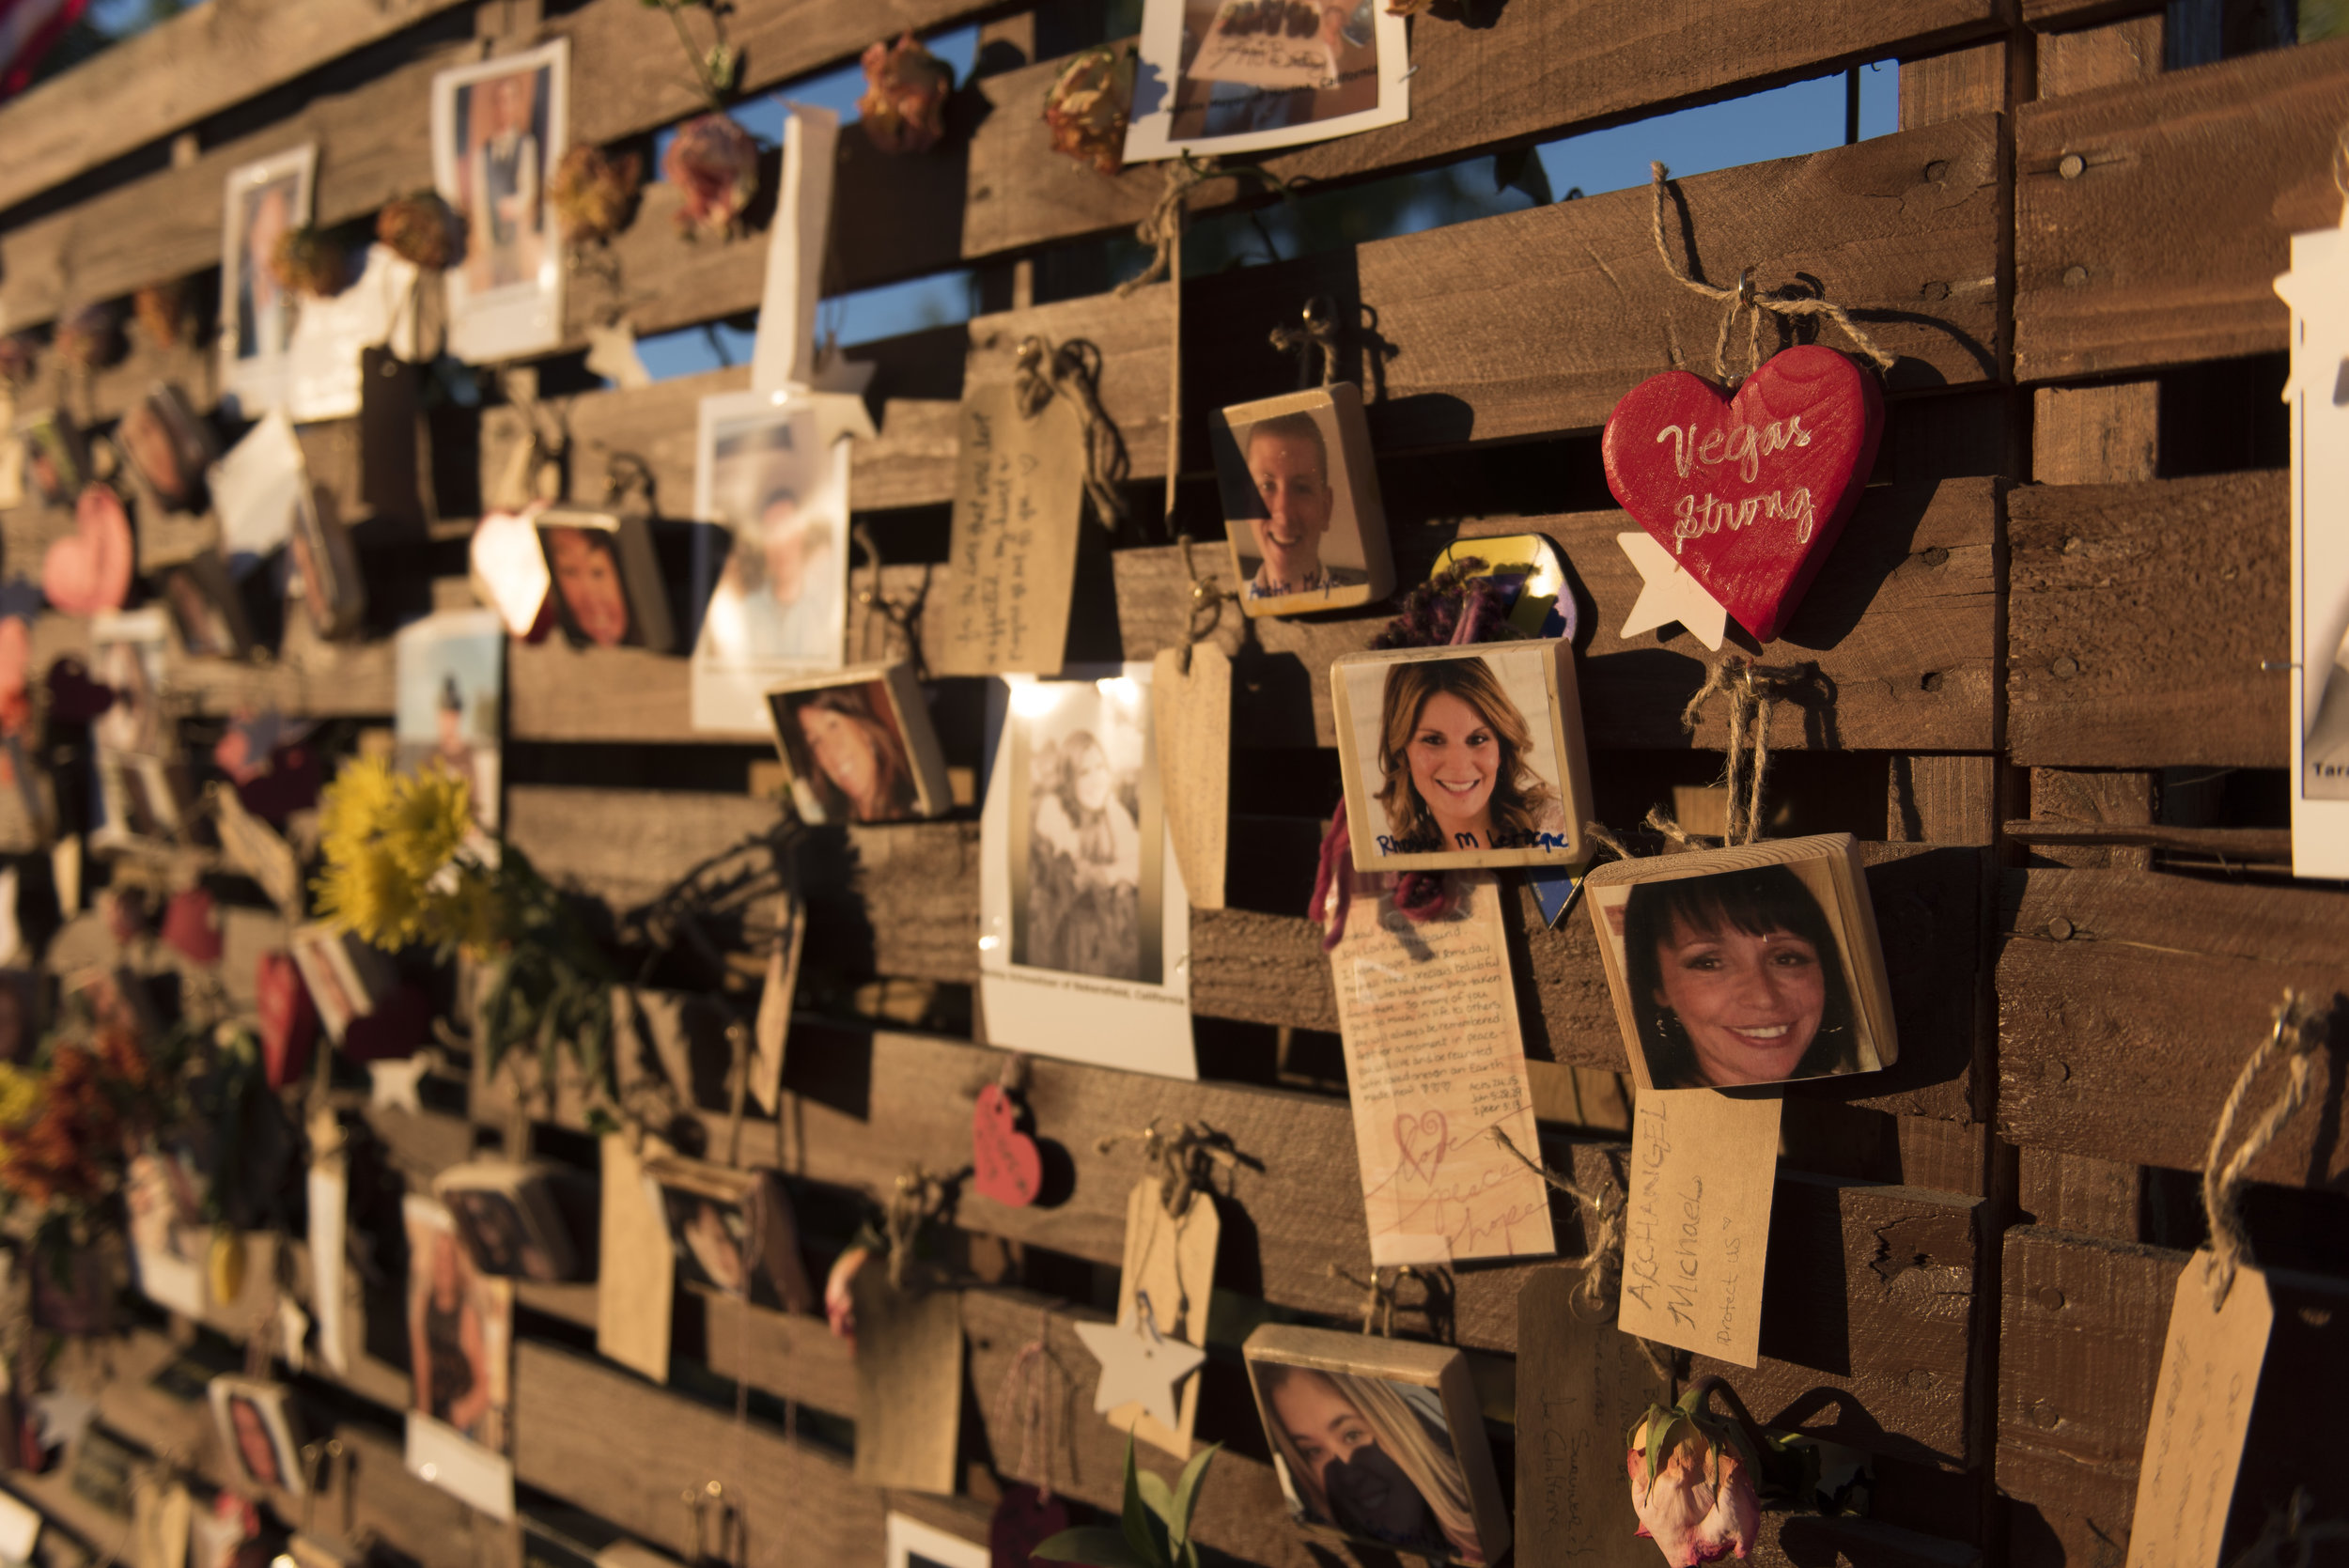 Photos of victims of the Route 91 Harvest Country Music Festival mass shooting are seen on the remembrance wall of the newly opened Las Vegas Community Healing Garden.